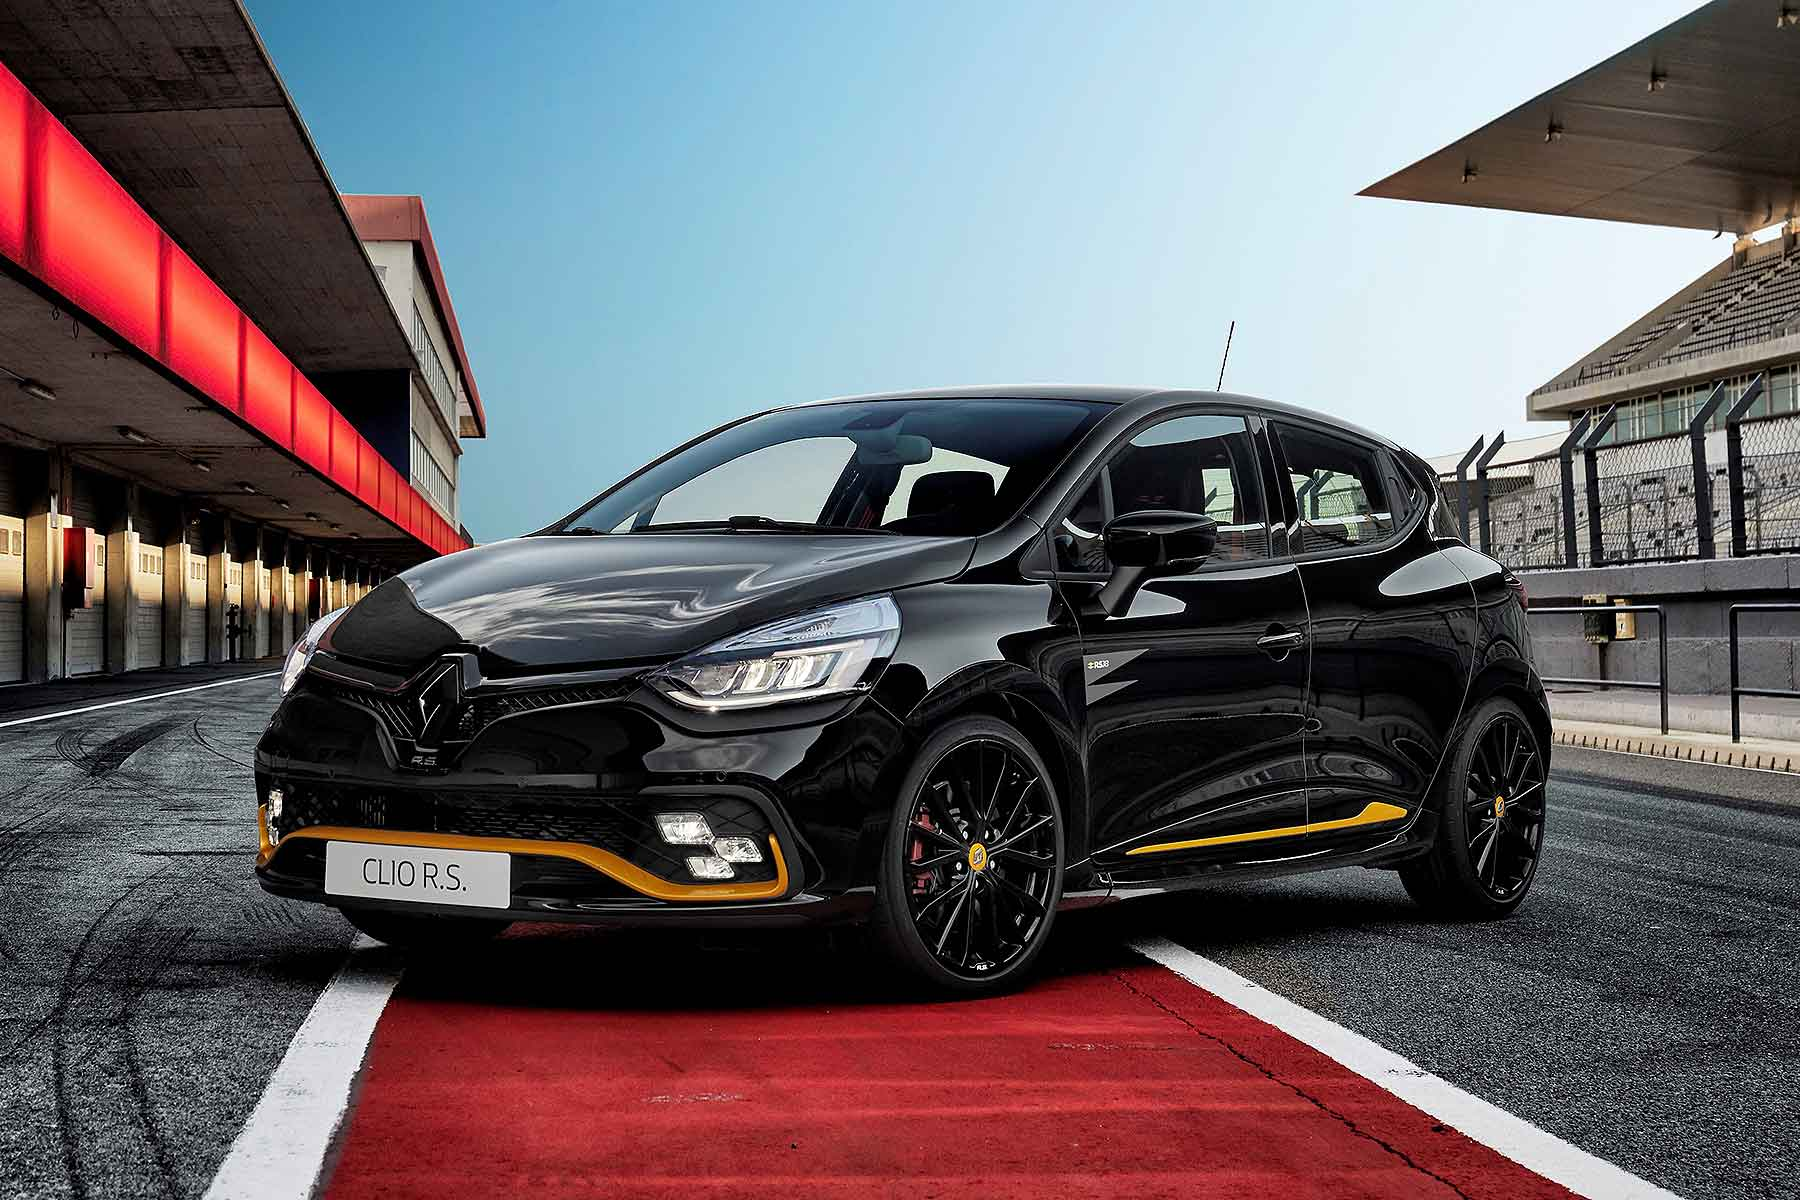 11 Great Cap 2020 Renault Reviews with Cap 2020 Renault